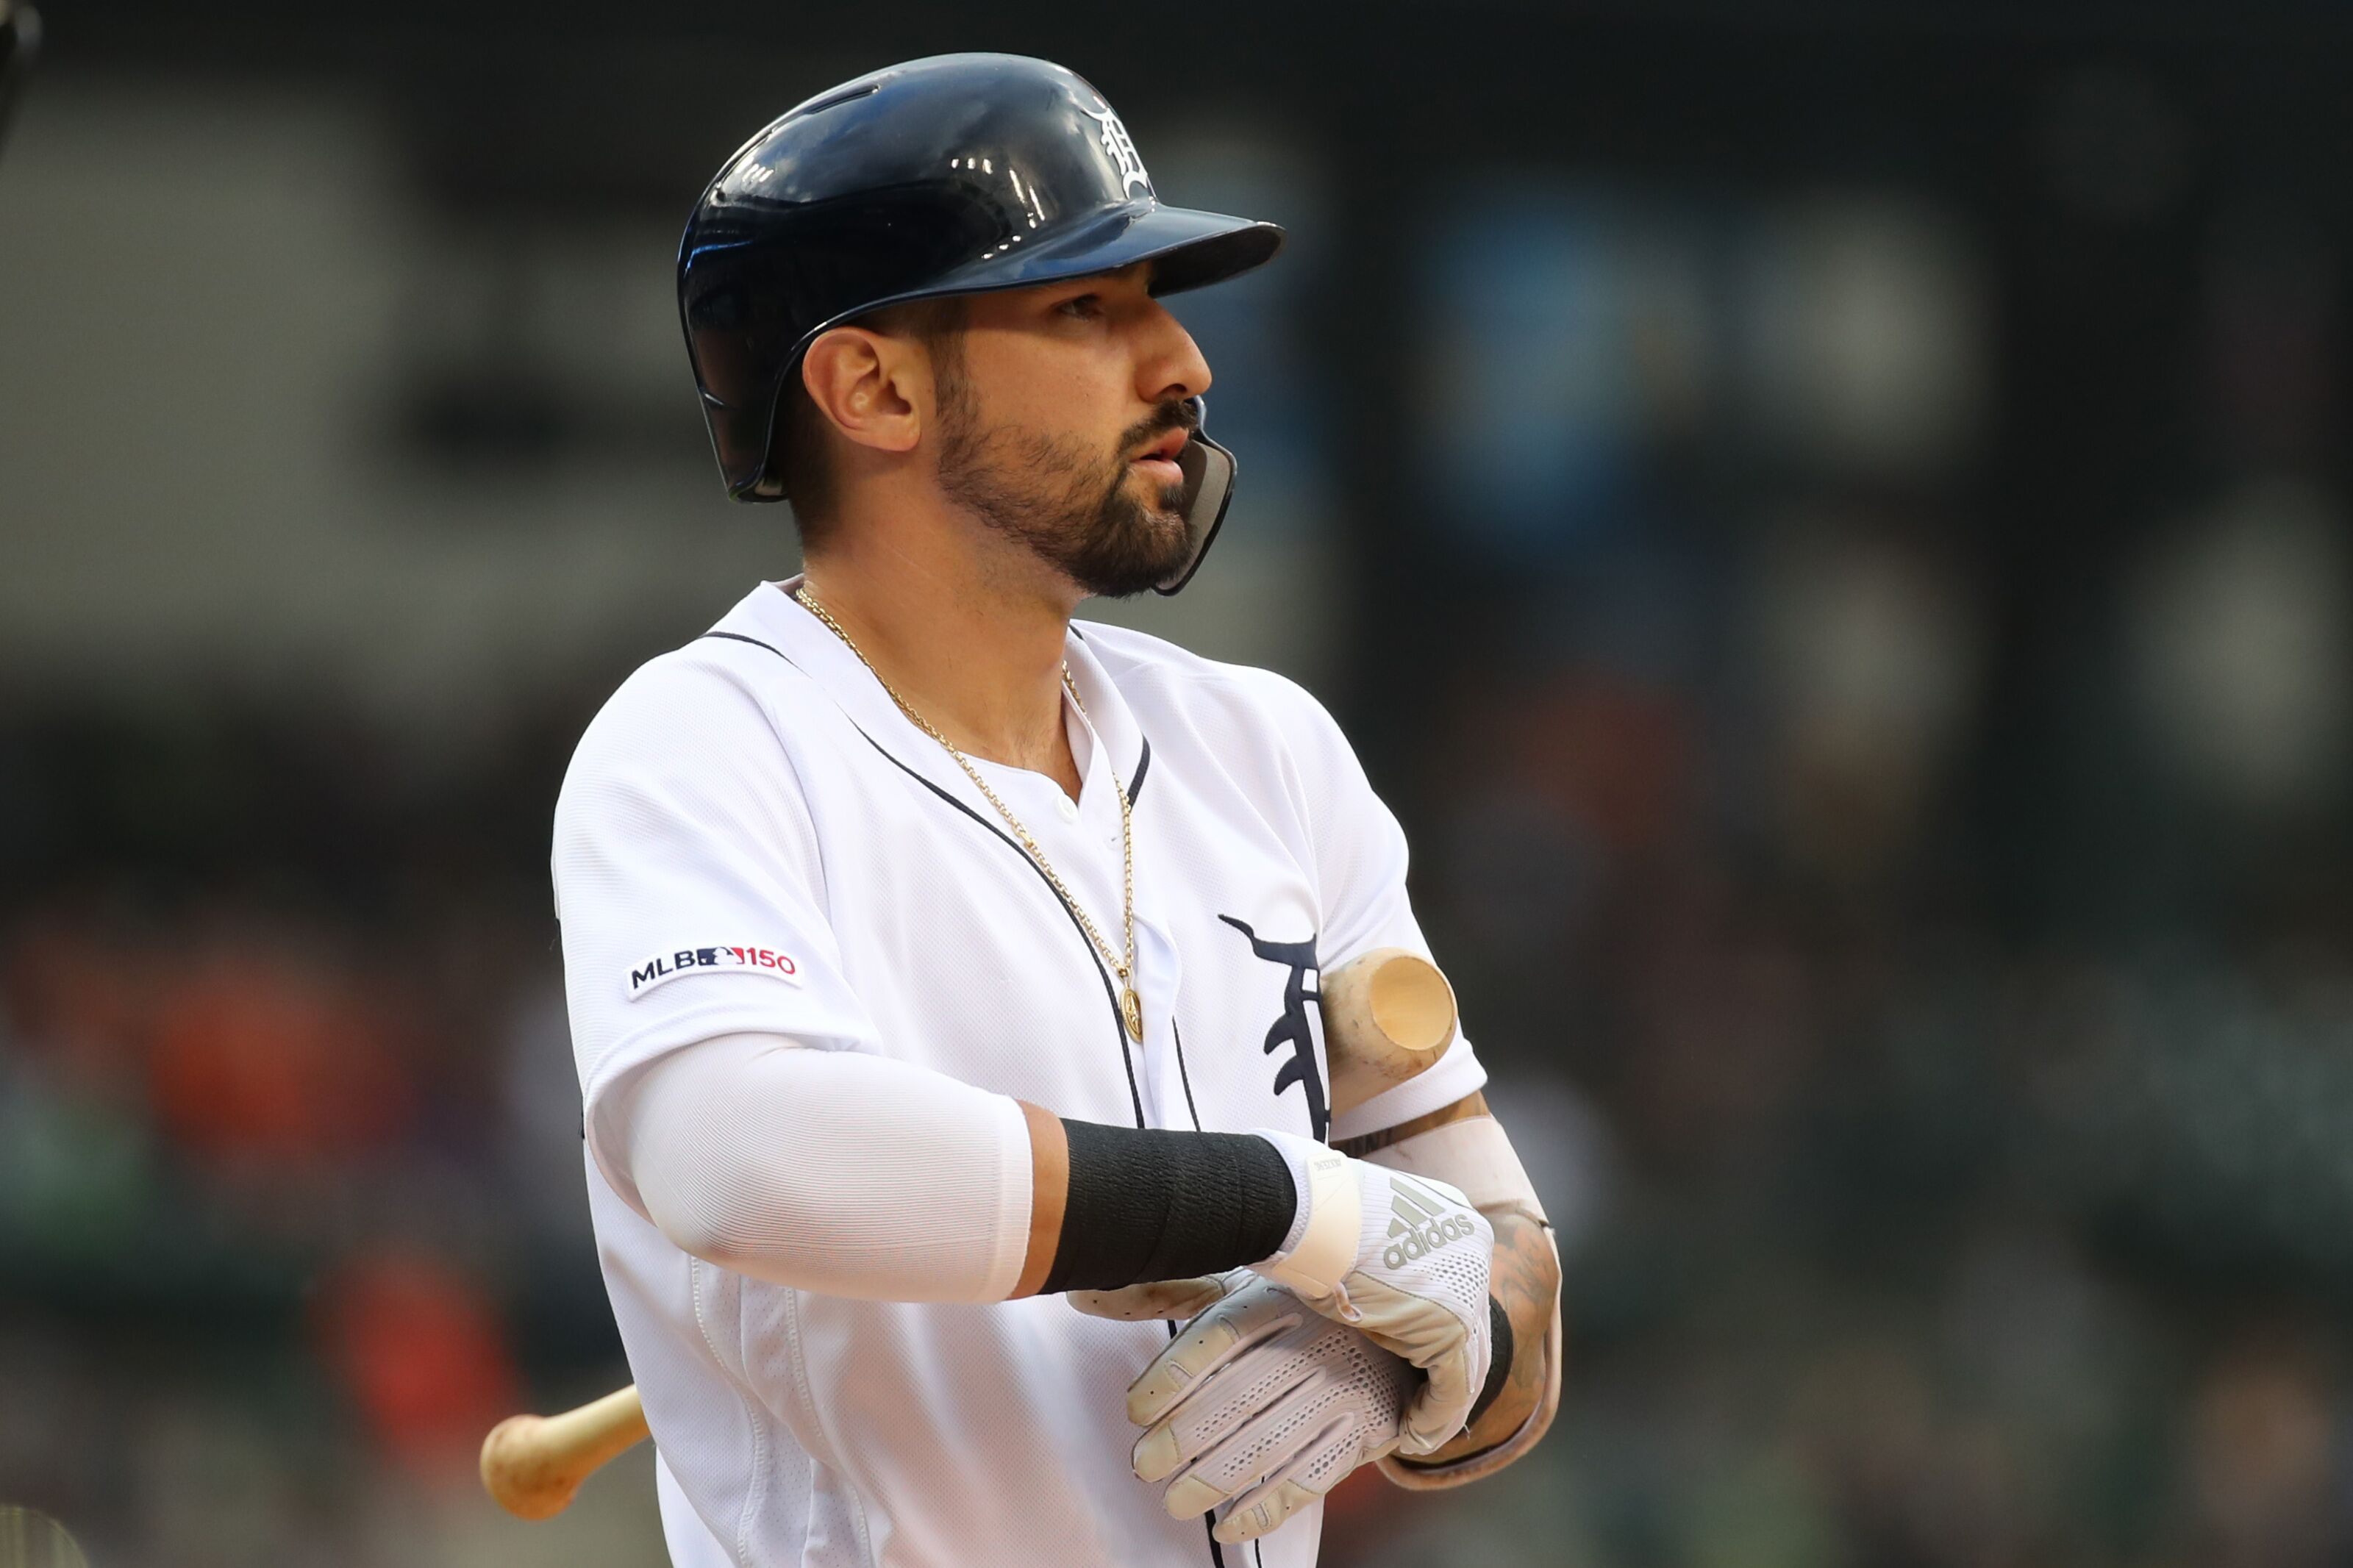 Nick Castellanos thinks it matters what position he plays